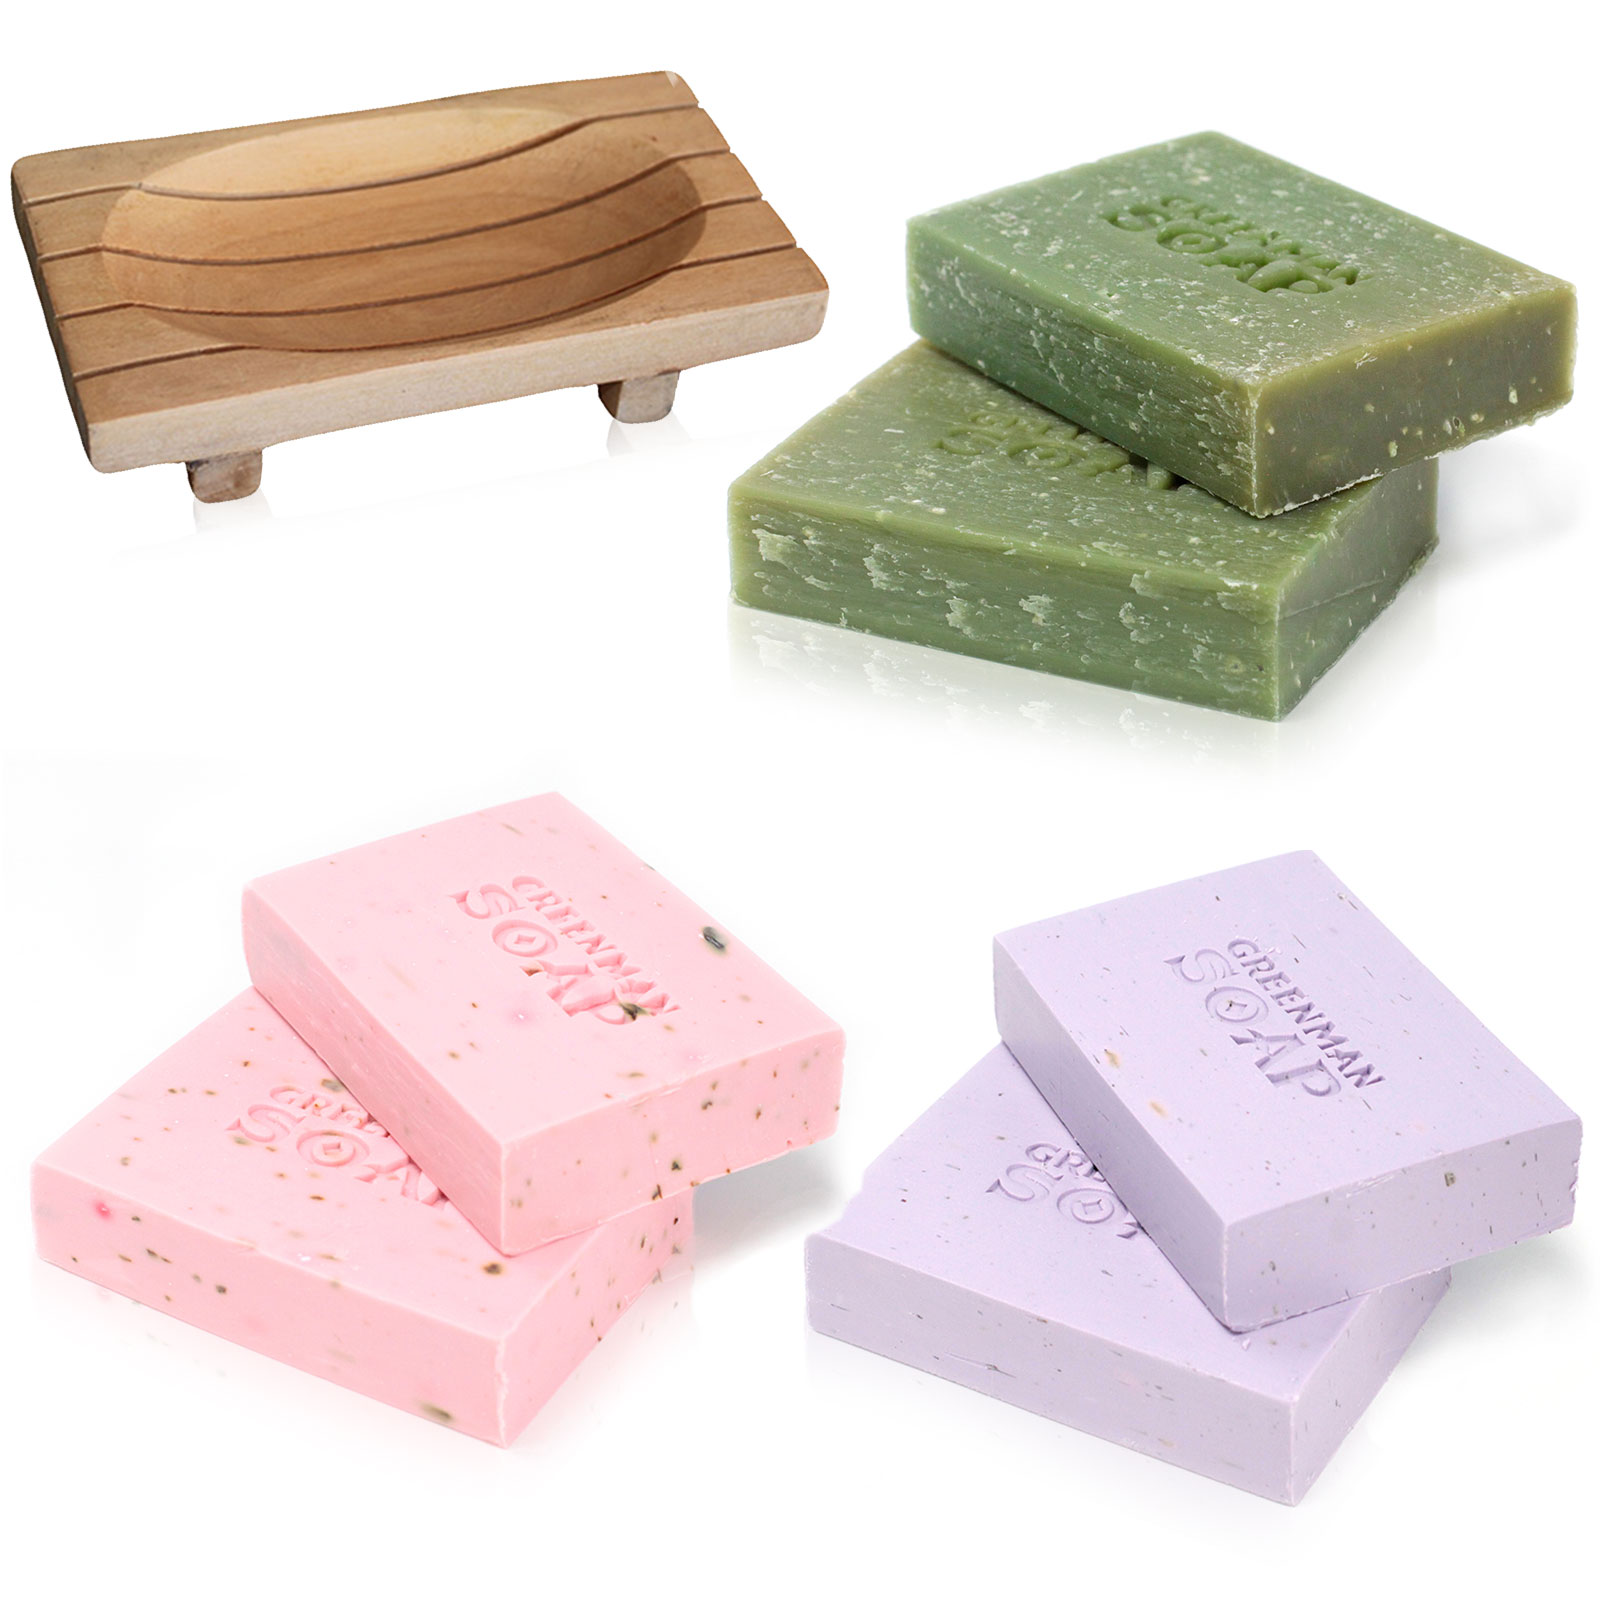 Greenman Soap Treat Box